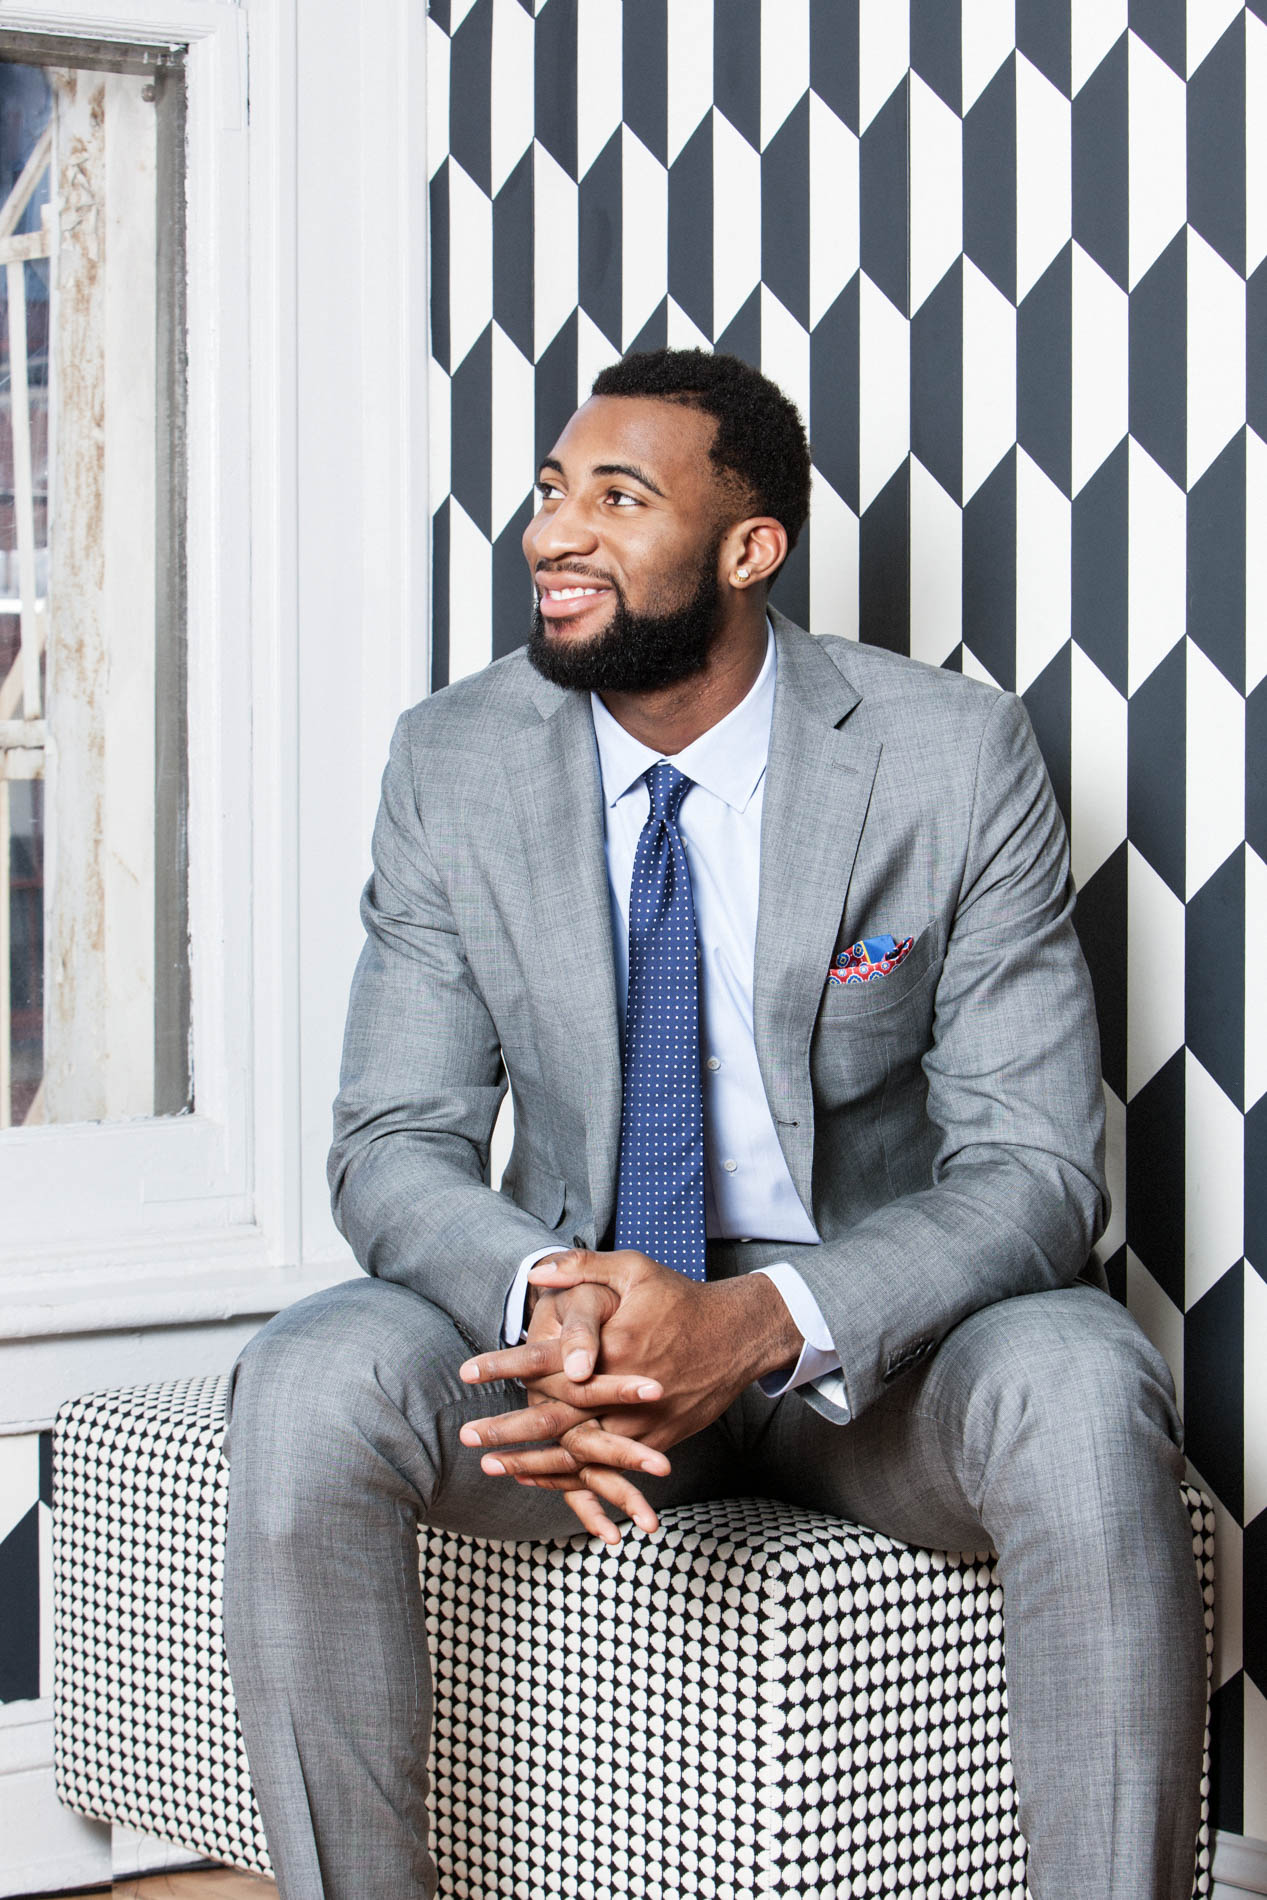 ANDRE_DRUMMOND_GQ_SUIT_DAY_2_247-Edit